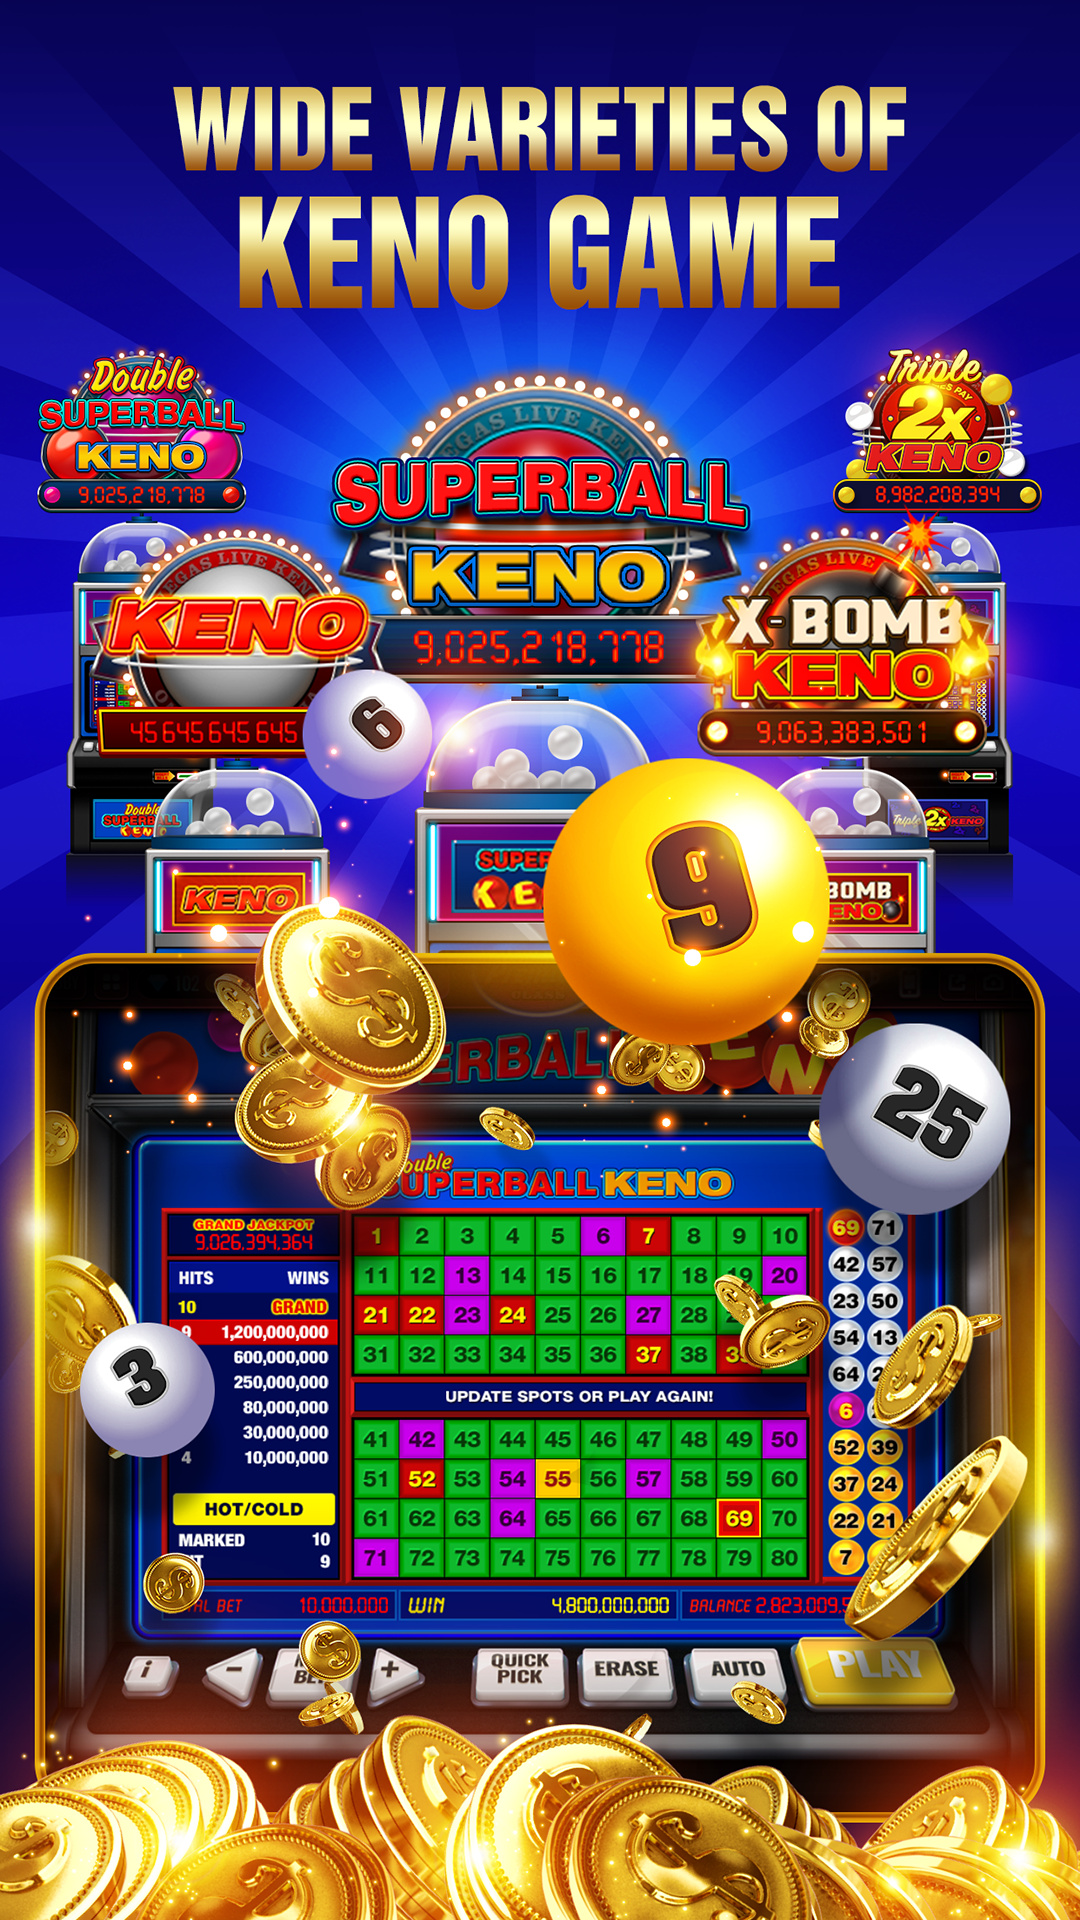 Free downloaded casino games slots casino park sonic wiki